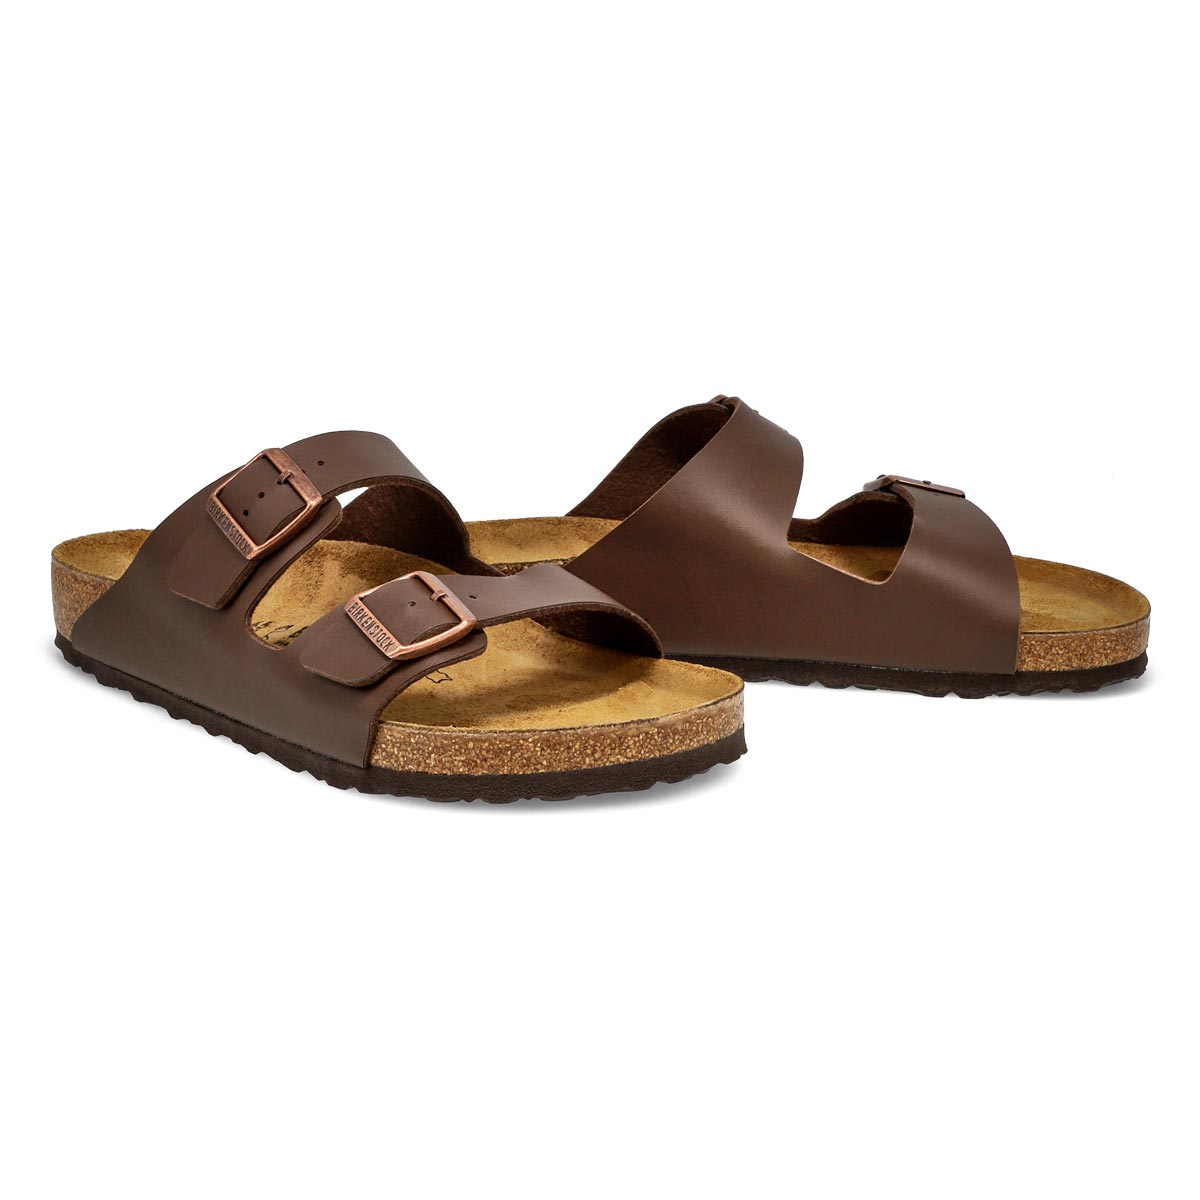 Mns Arizona BF brown 2 strap sandal